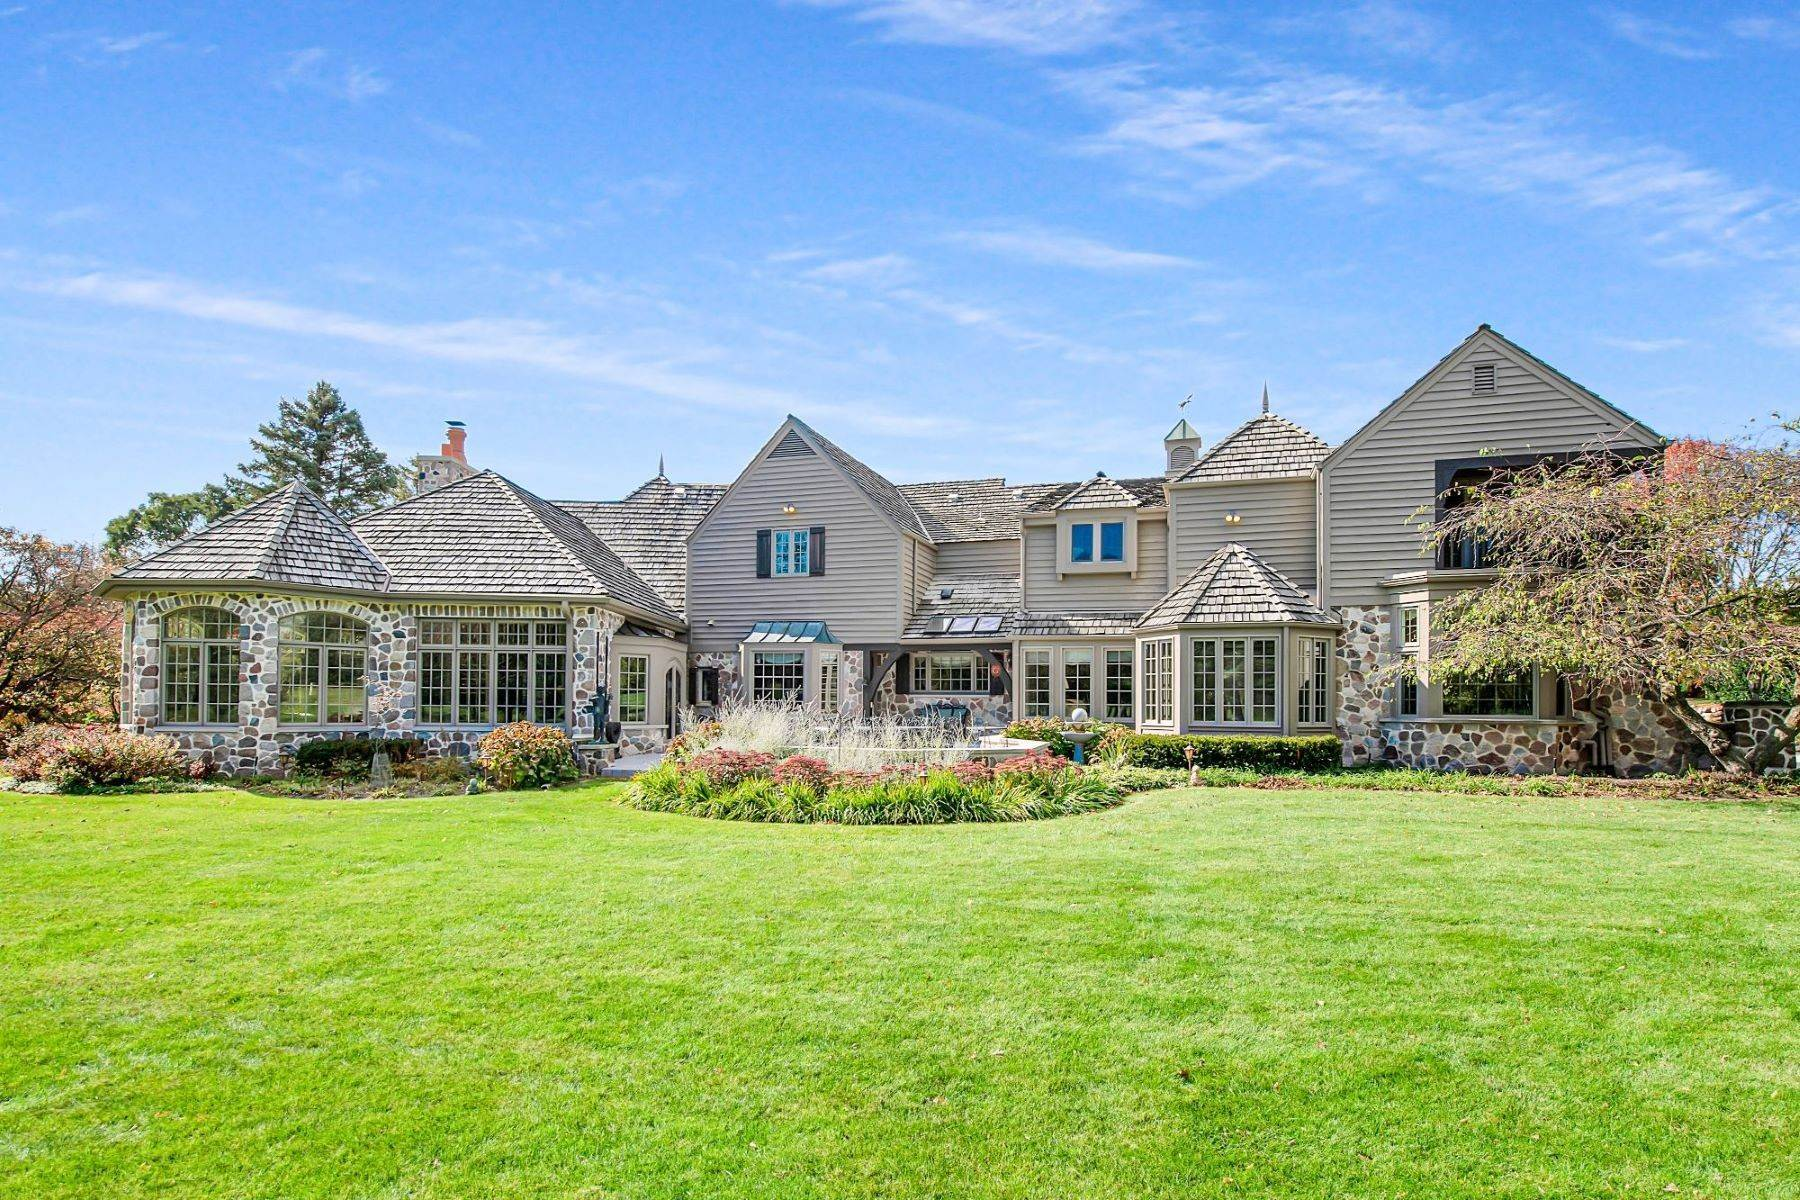 2. Single Family Homes at 5206 W. River Trail Ct. Mequon, Wisconsin 53092 United States